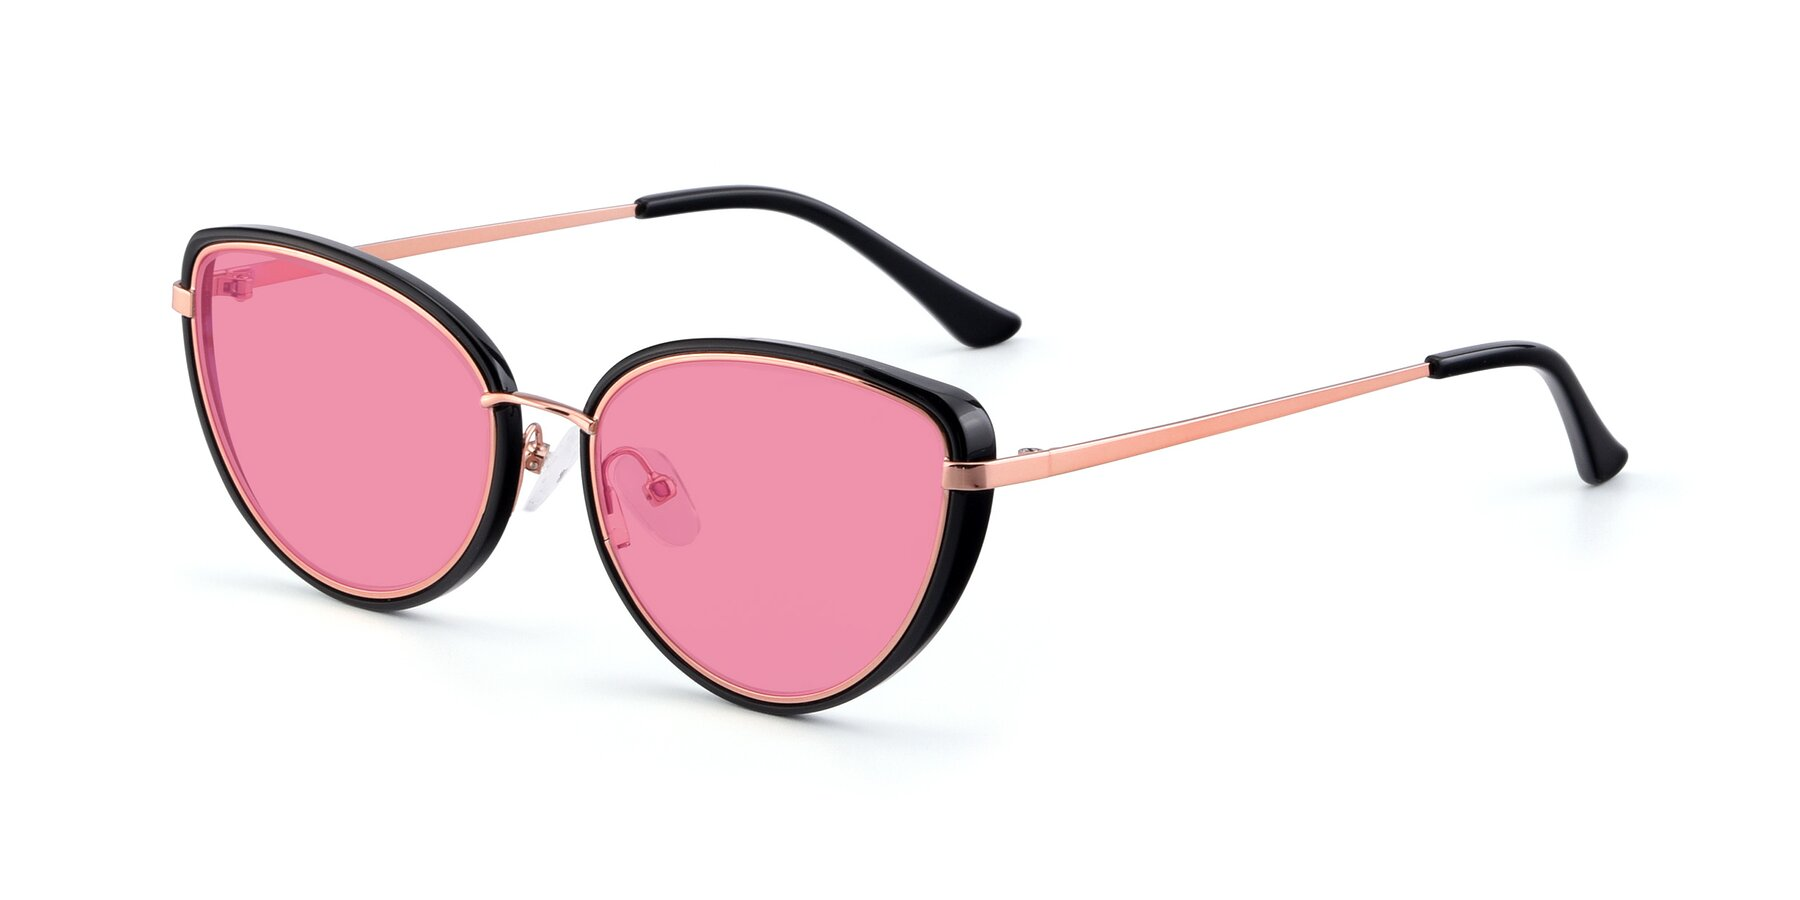 Angle of 17706 in Black-Rose Gold with Pink Tinted Lenses